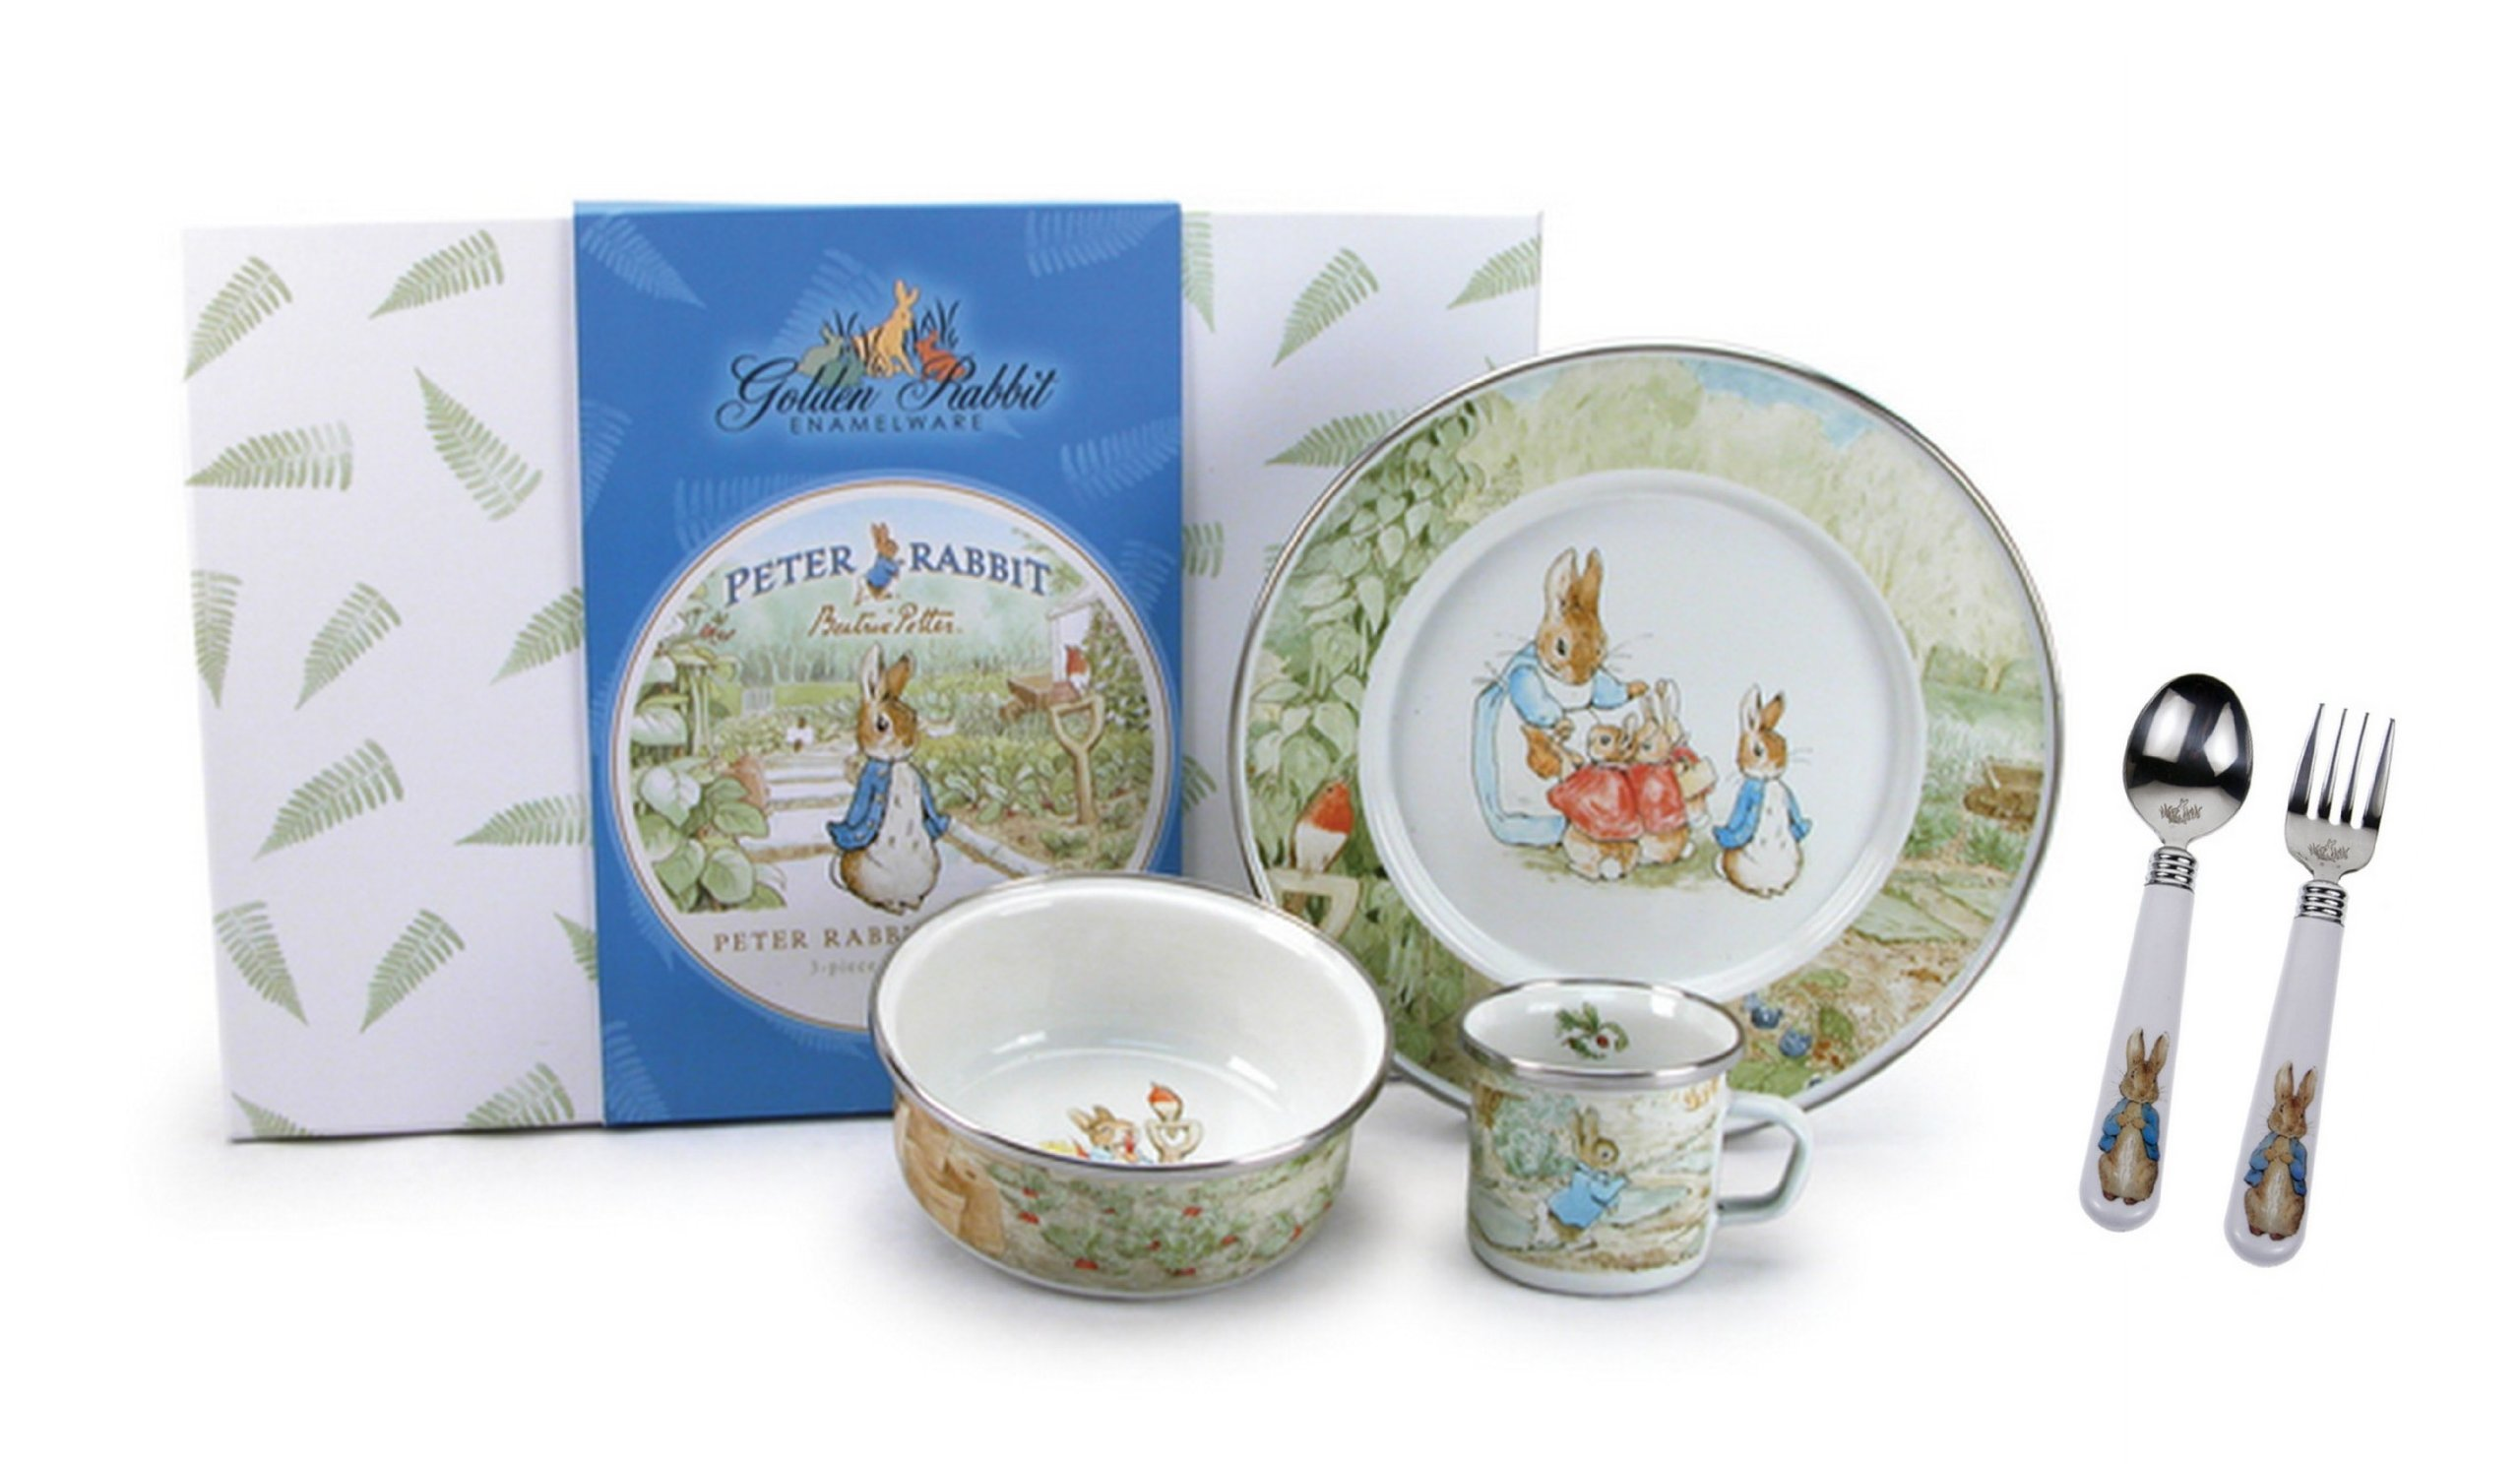 Golden Rabbit, Beatrix Potter's Peter Rabbit 4 Piece Feeding Set, Classic Style